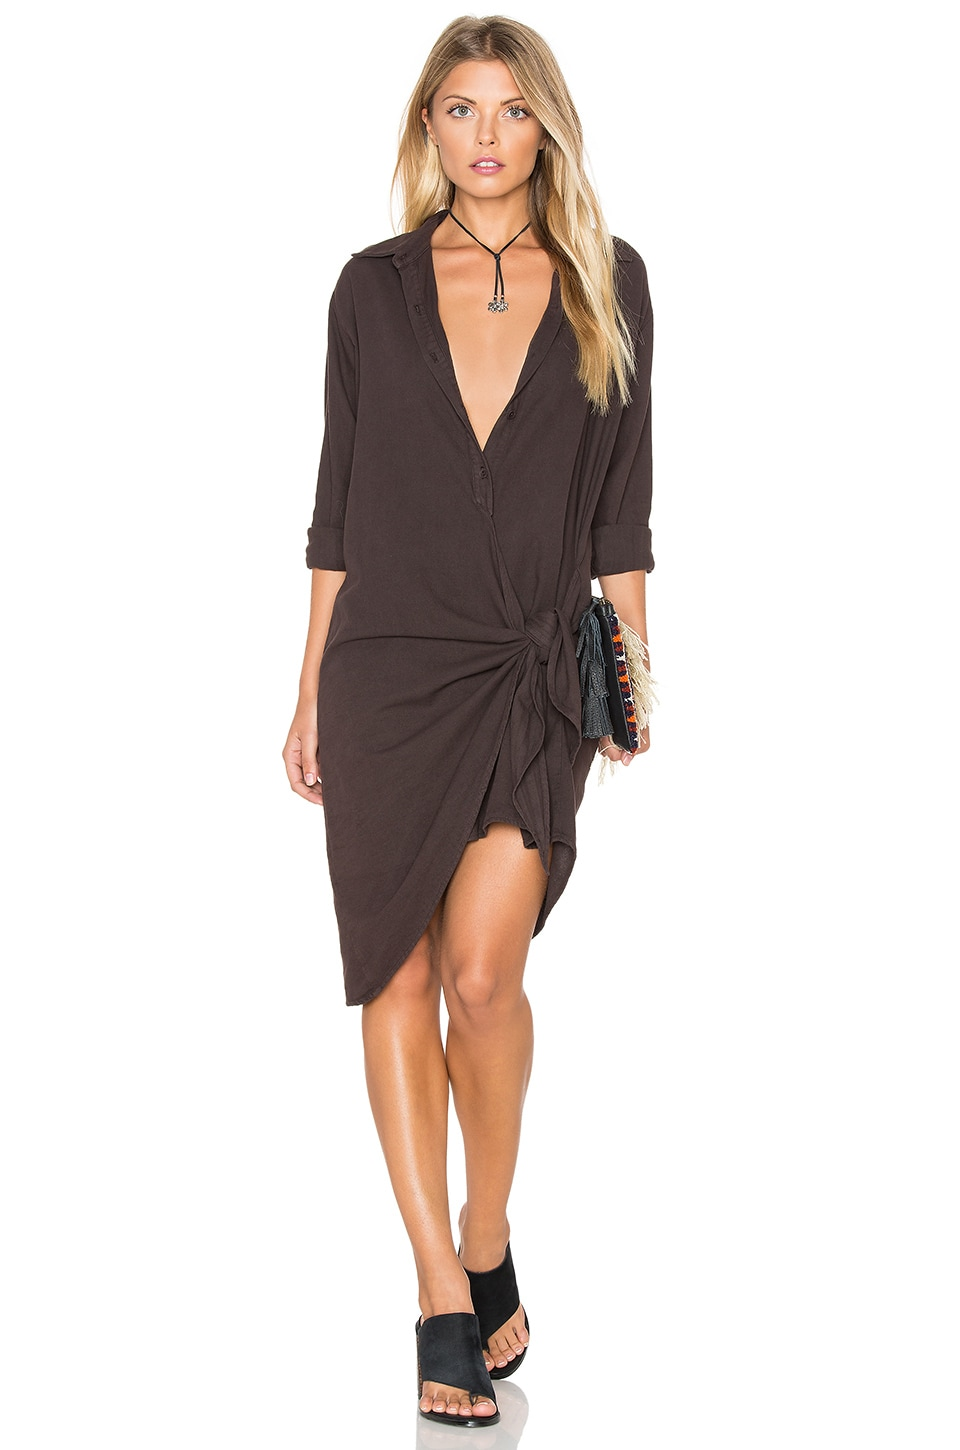 YORK street Tied Shirt Dress in Espresso